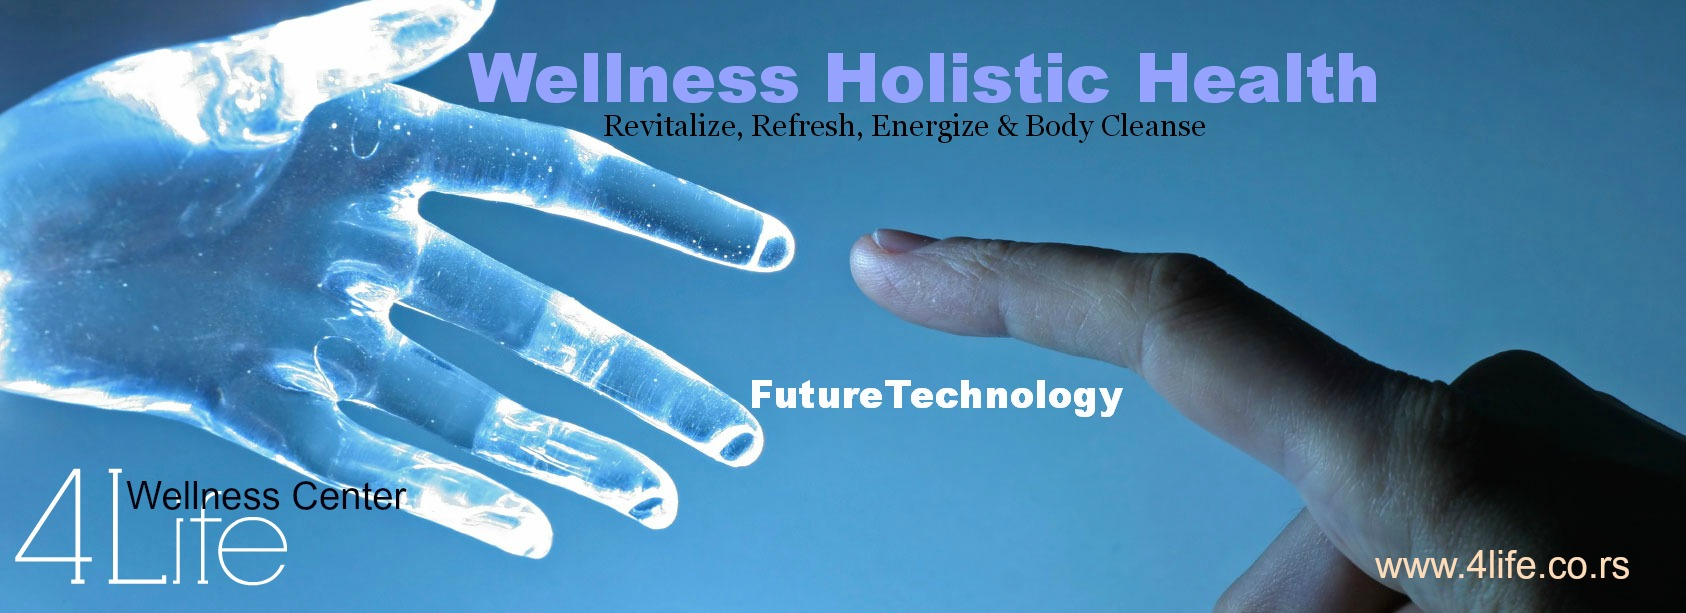 Body Cleanse FutureTechnology